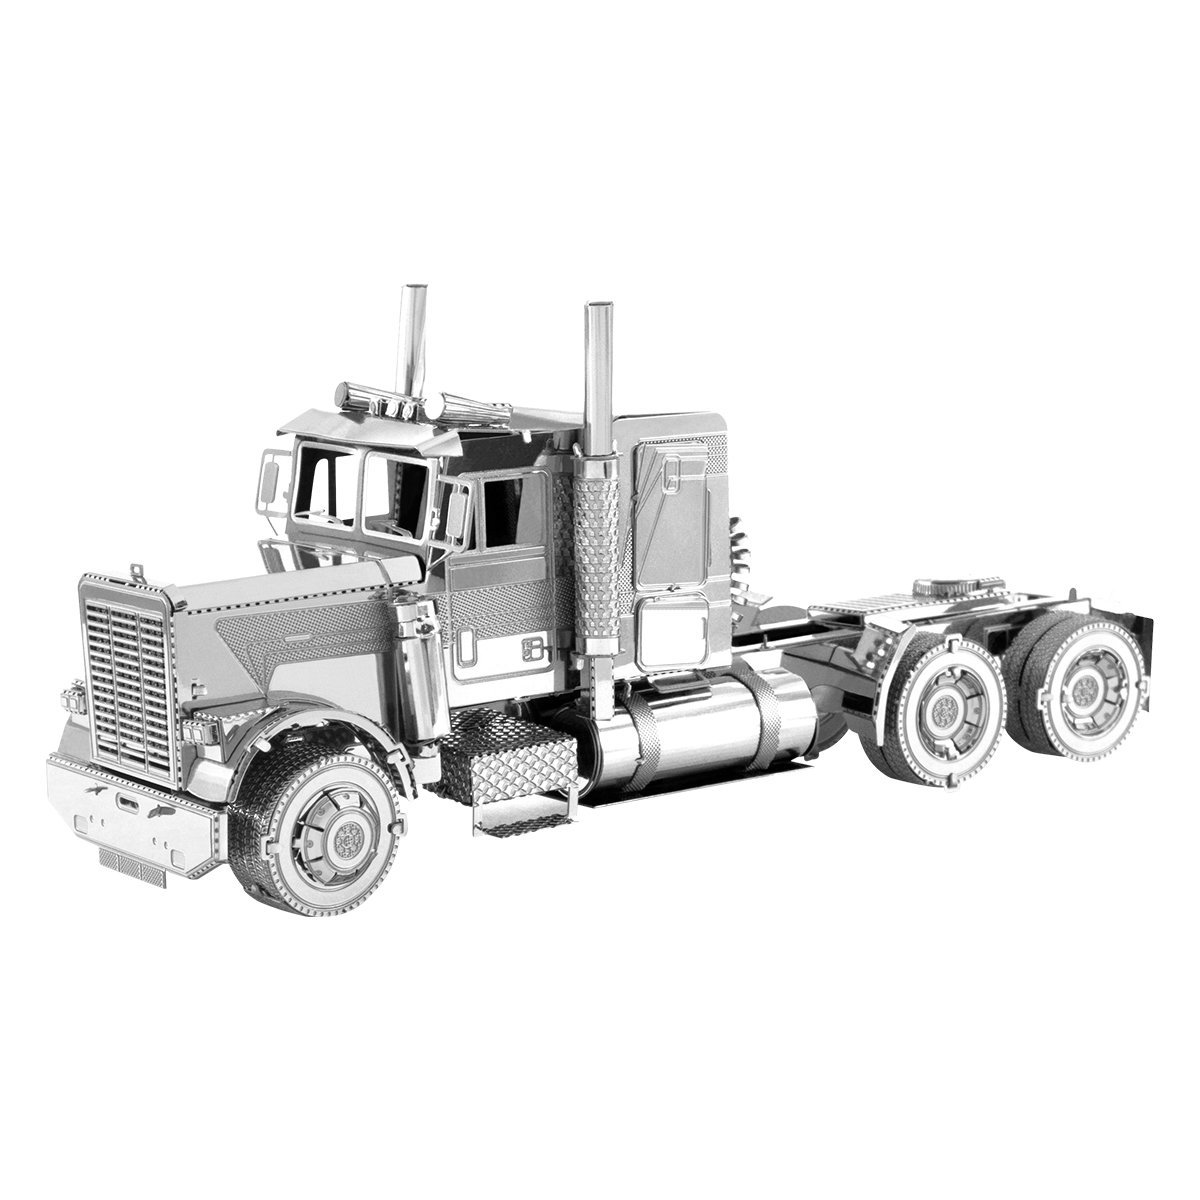 Fascinations Metal Earth Freightliner Long Nose Truck 3D Metal Model Kit